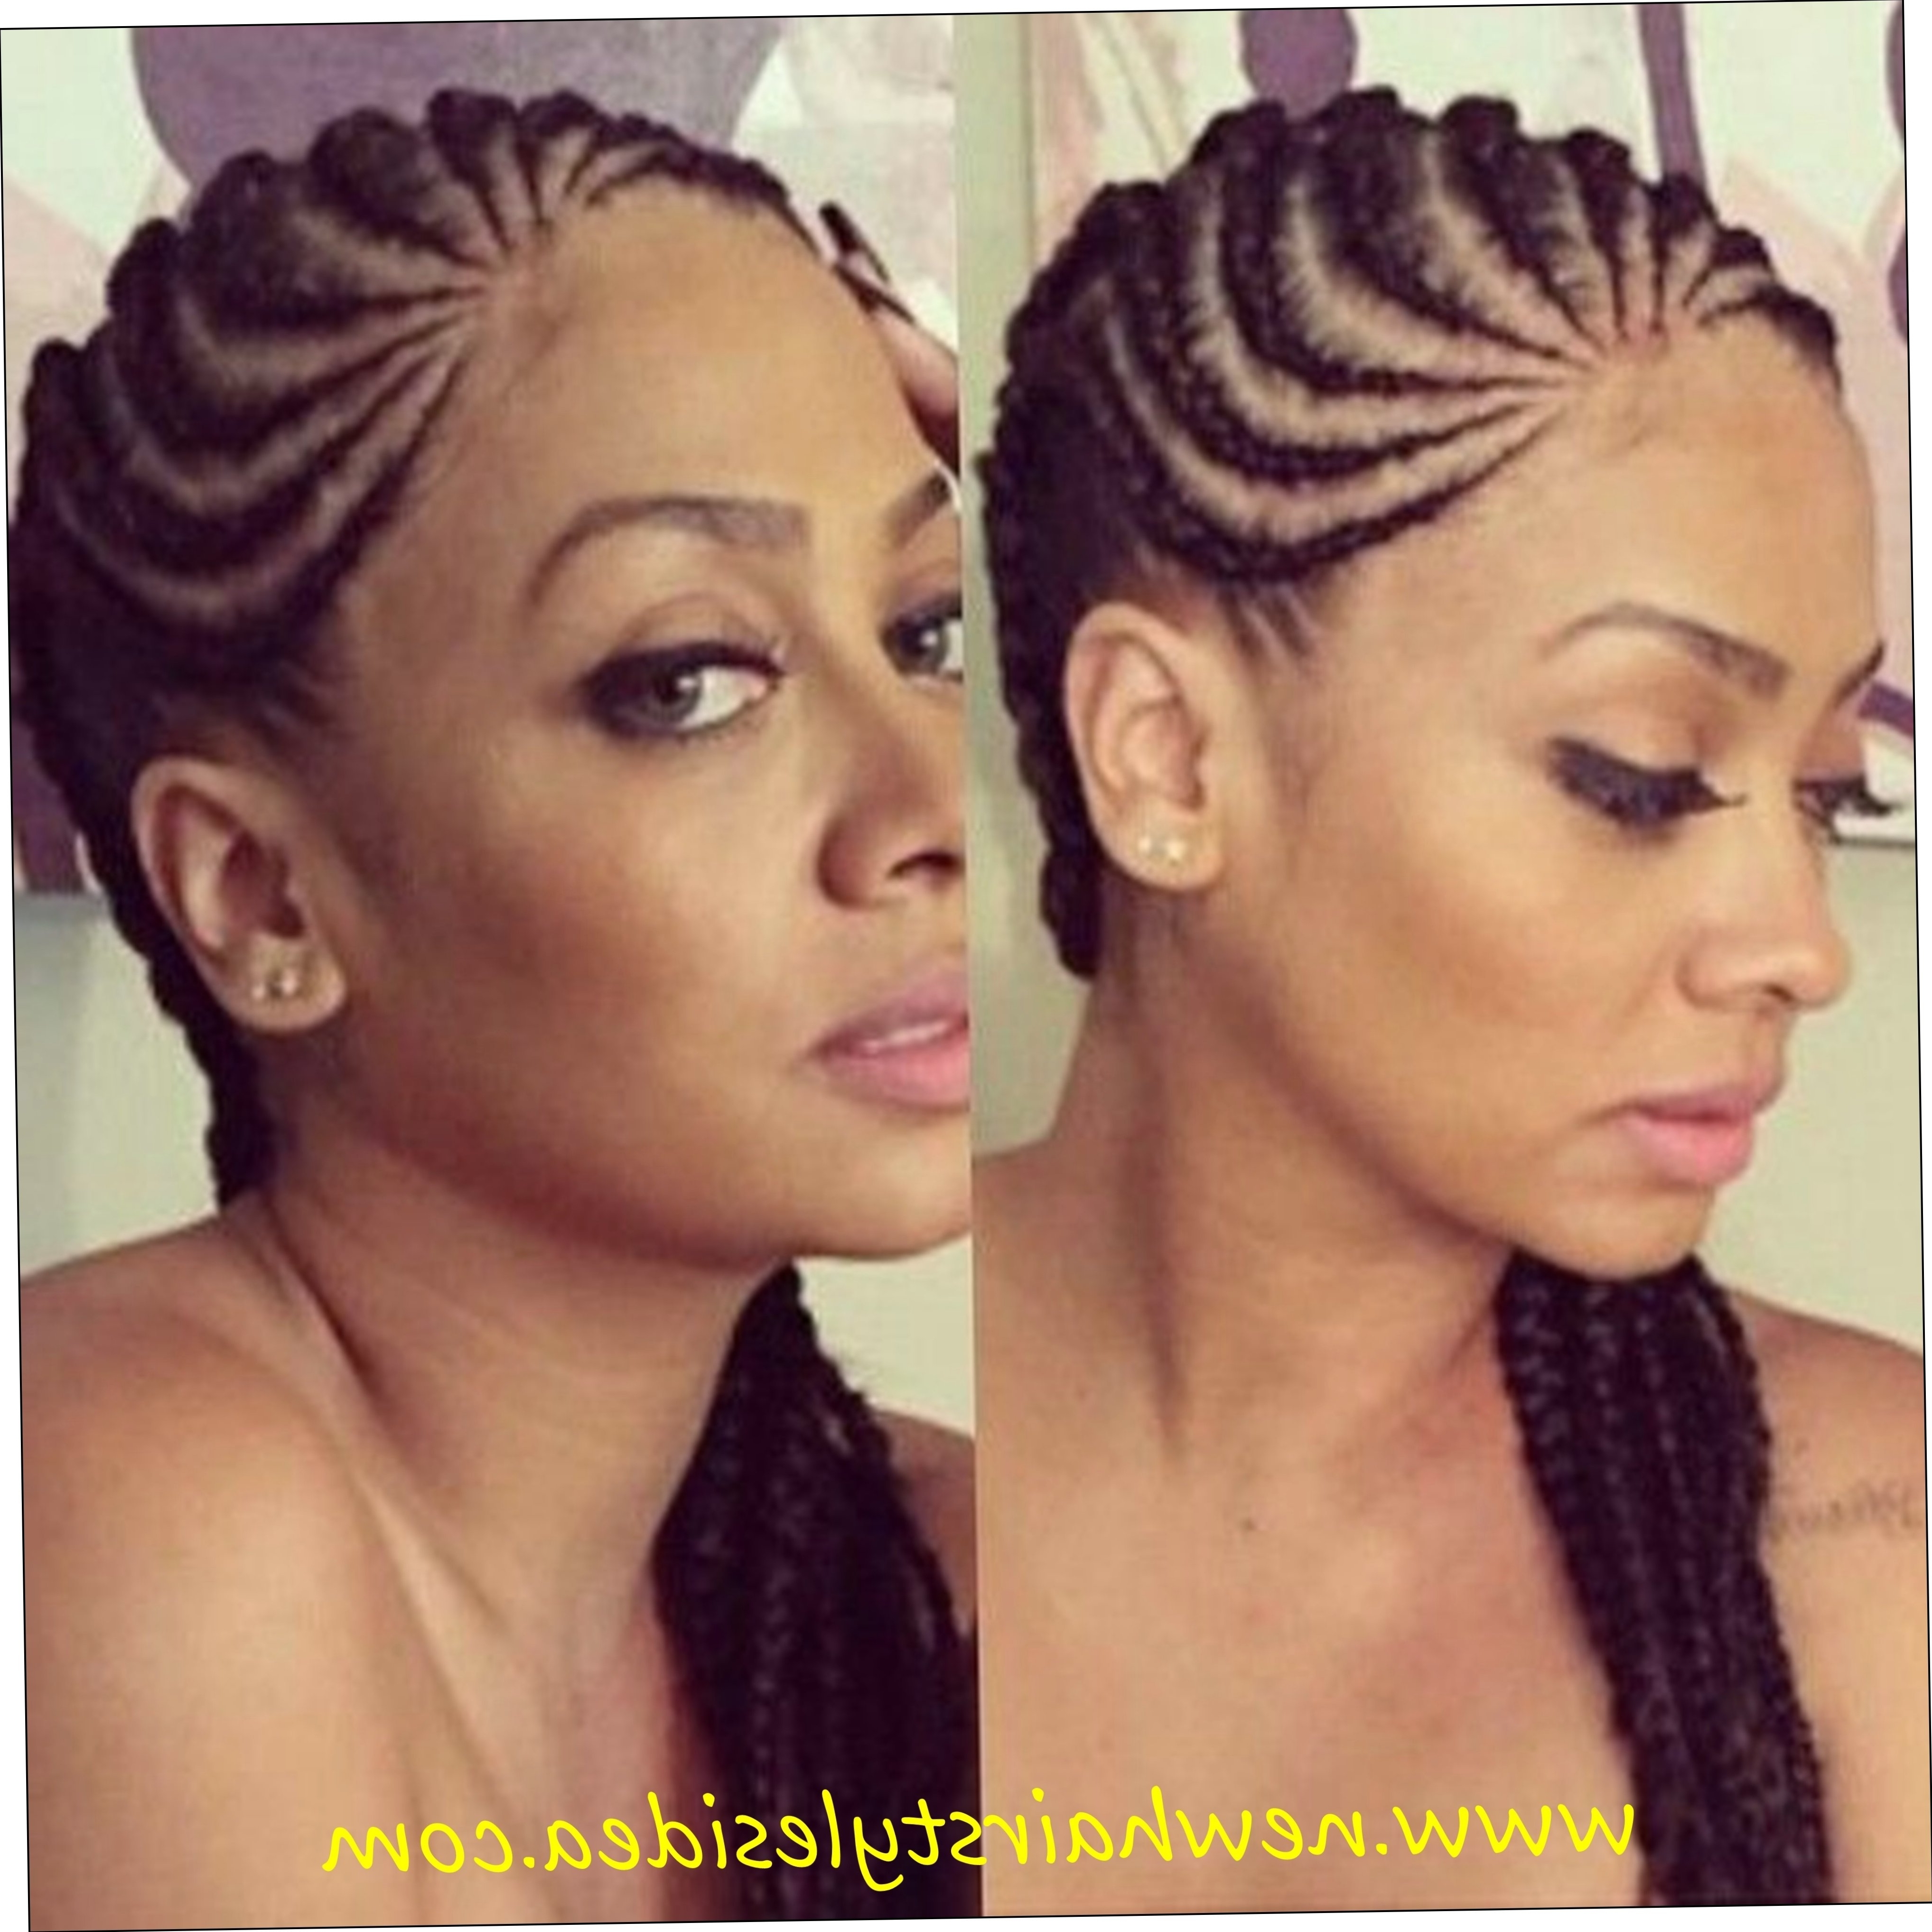 Cornrows Styles For Oval Faces Cornrow Hairstyles For Round Faces Inside 2017 Cornrows Hairstyles For Round Faces (View 10 of 15)